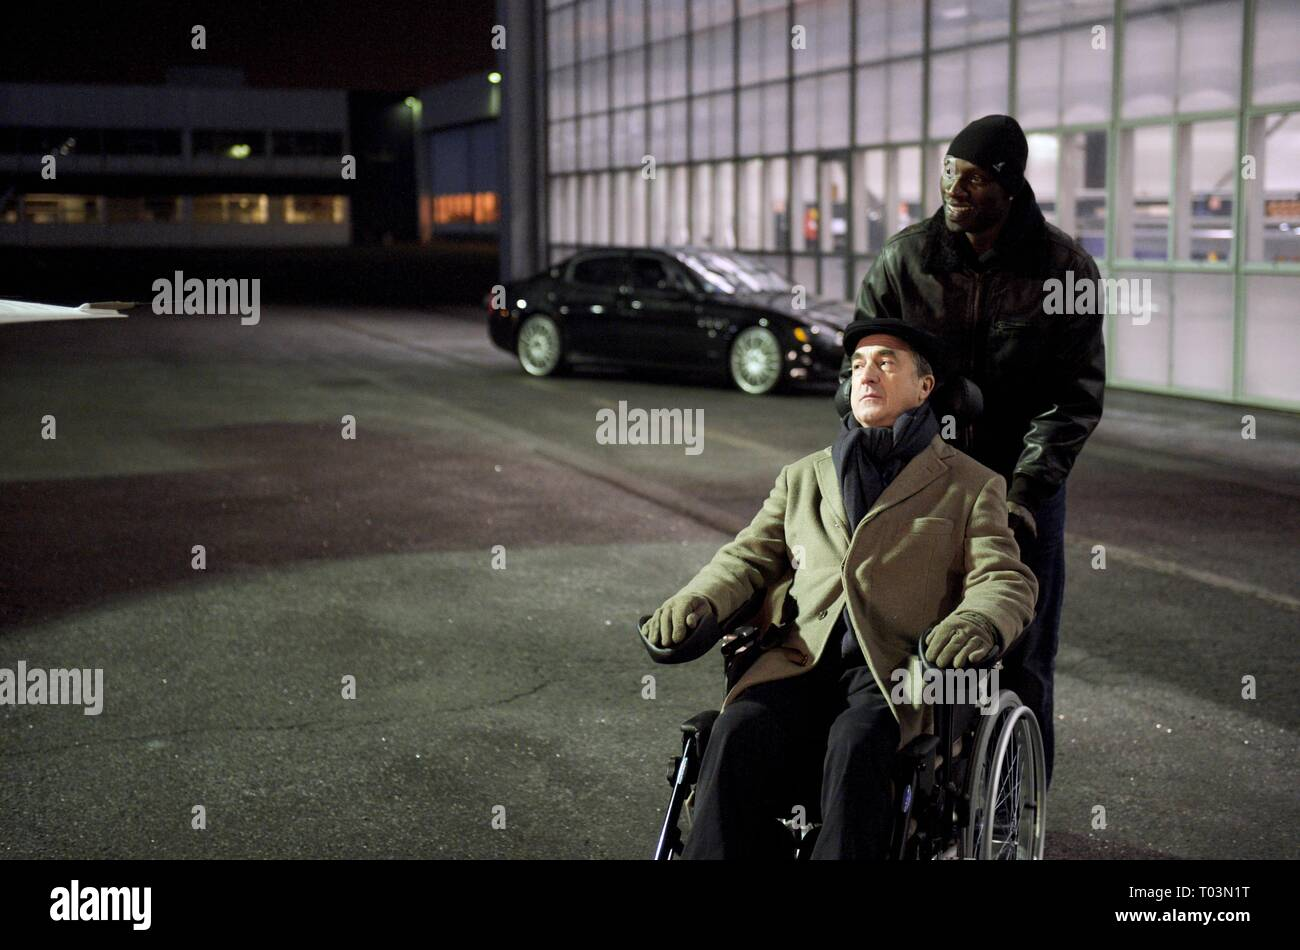 FRANCOIS CLUZET, OMAR SY, INTOUCHABLES, 2011 - Stock Image